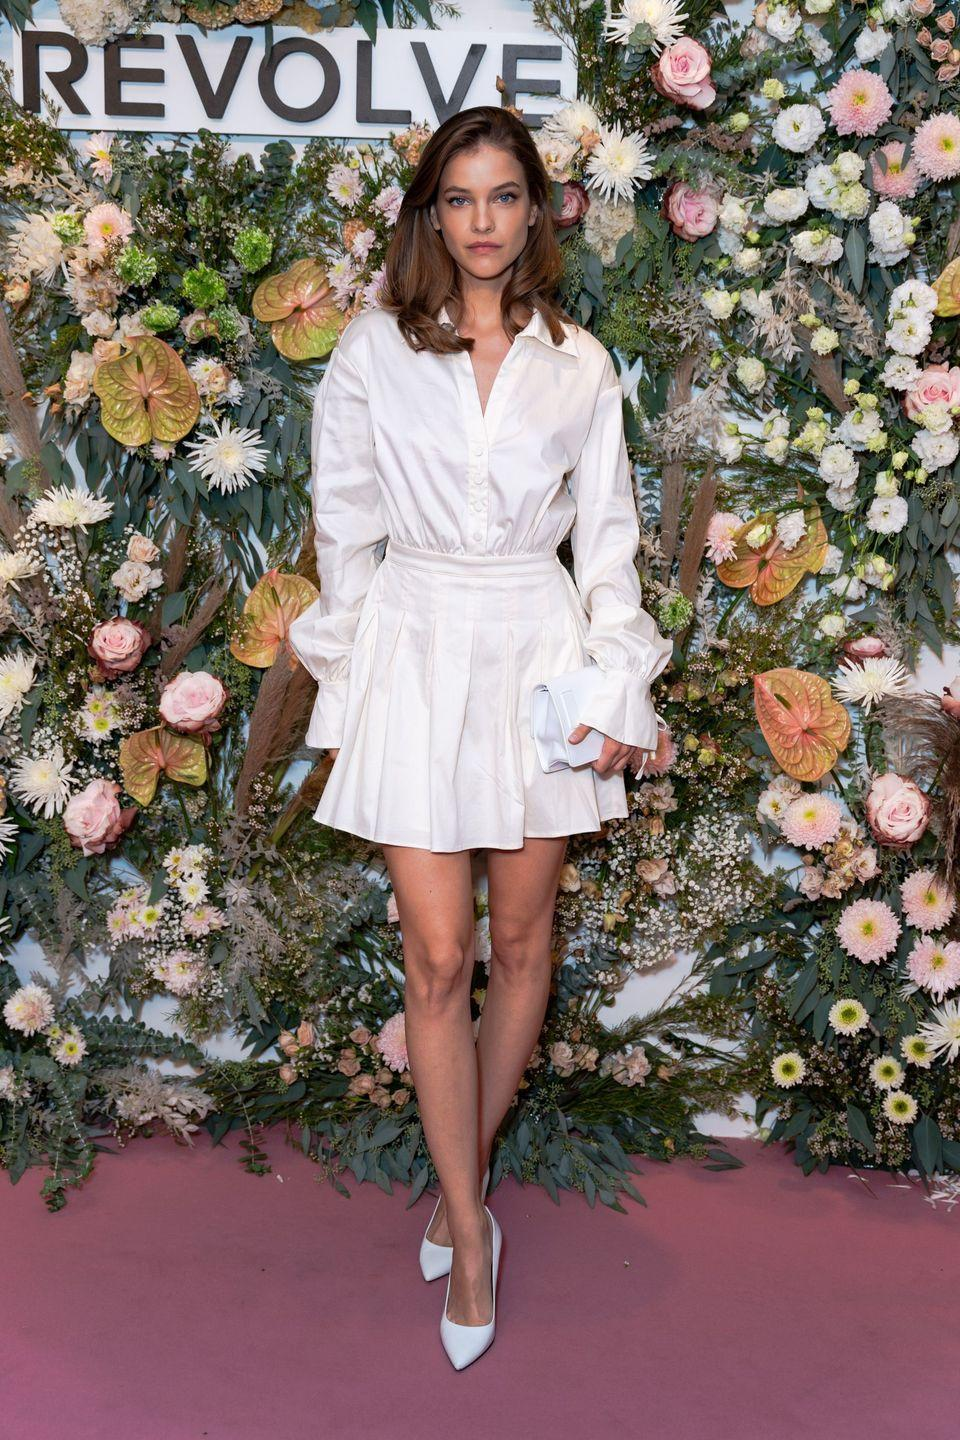 <p><strong>9 September</strong></p><p>Barbara Palvin looked chic at the Revolve event in a white shirt and matching pleated skirt.</p>